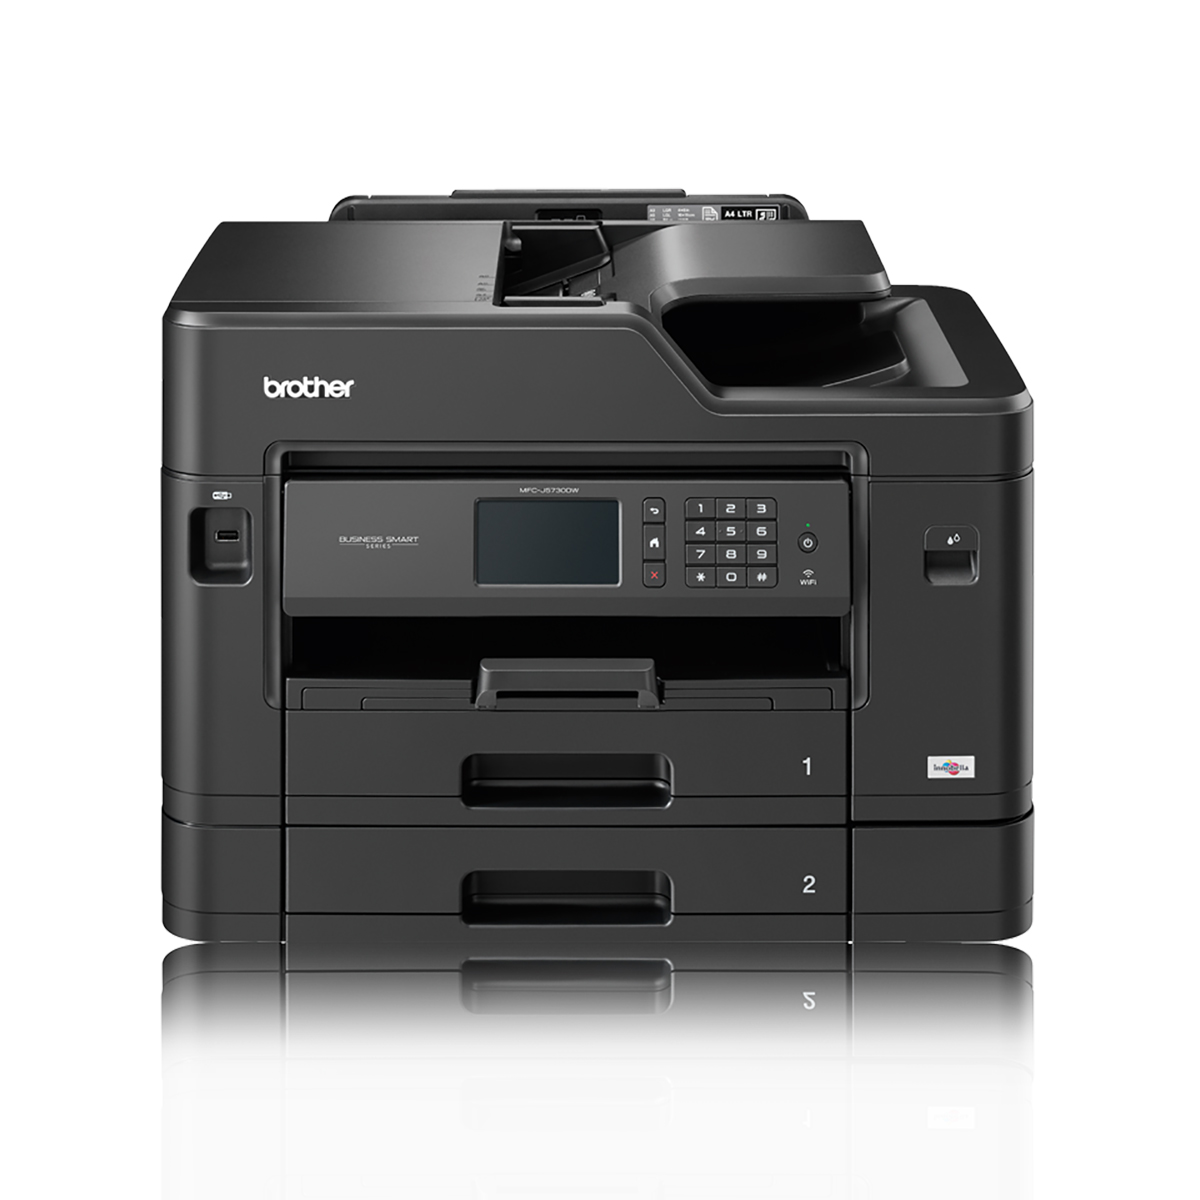 Brother MFC-J5730DW A Grade - Refurbished Machine